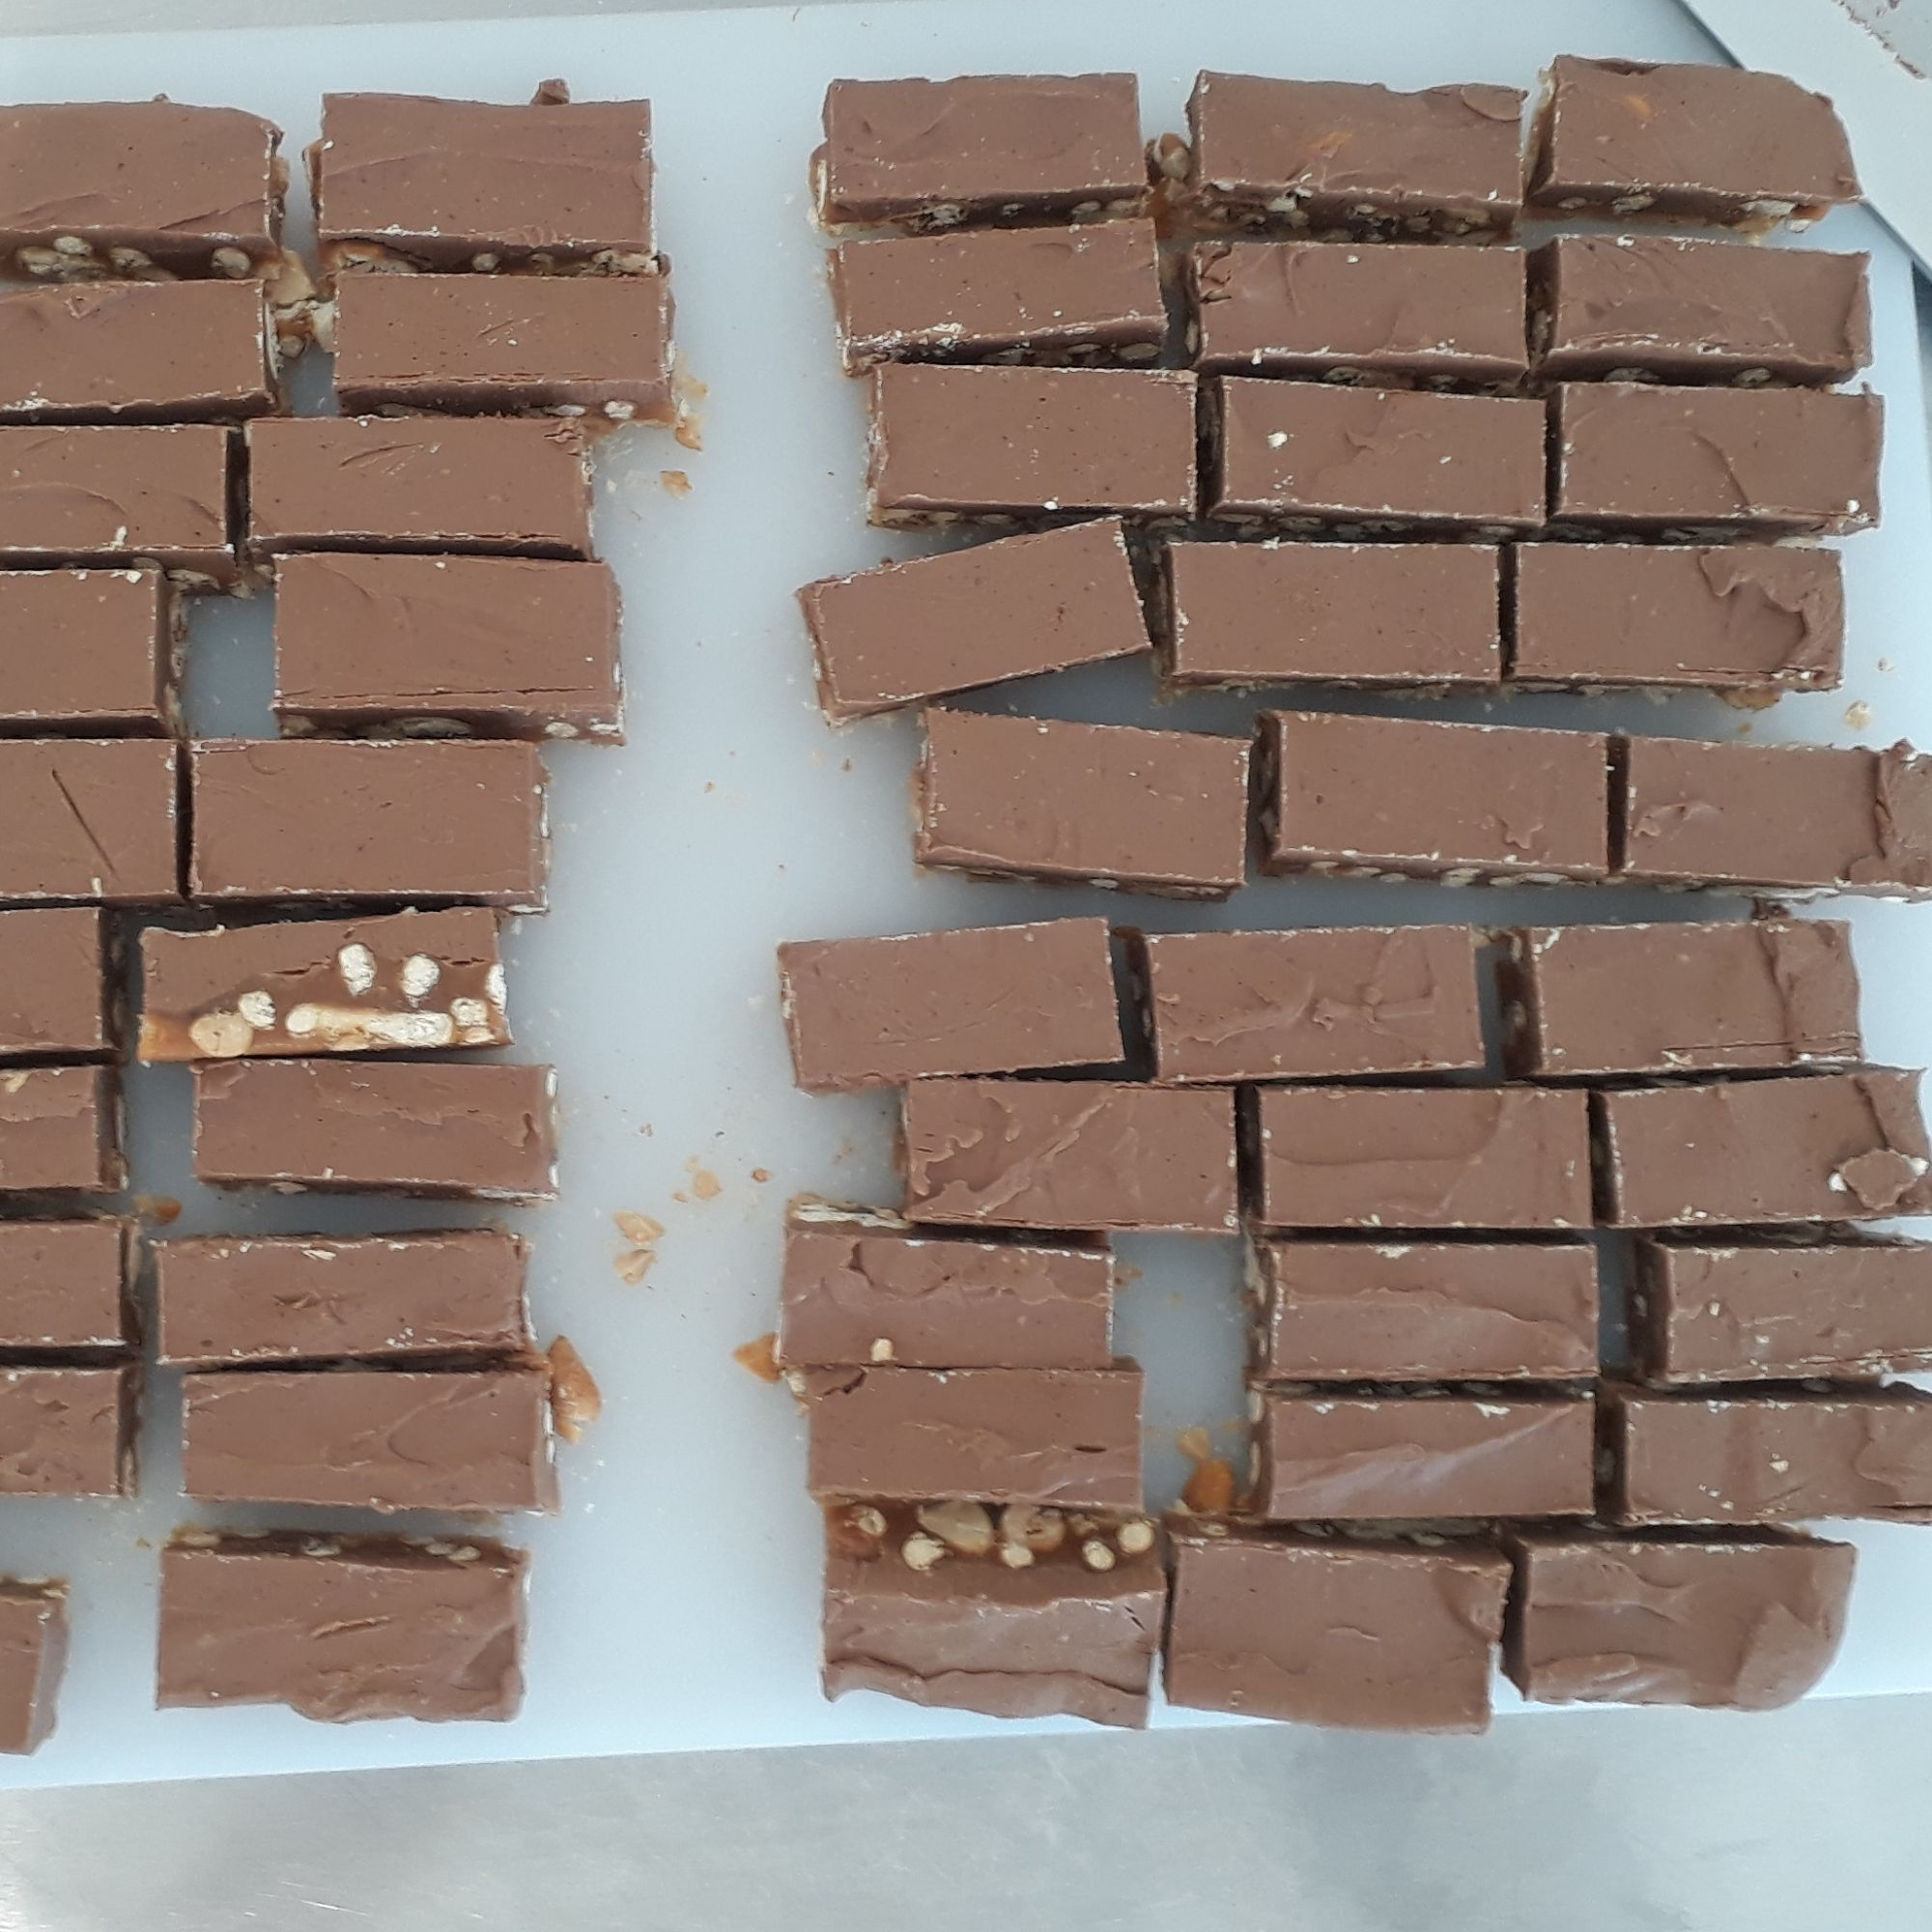 Chocolate bars in progress